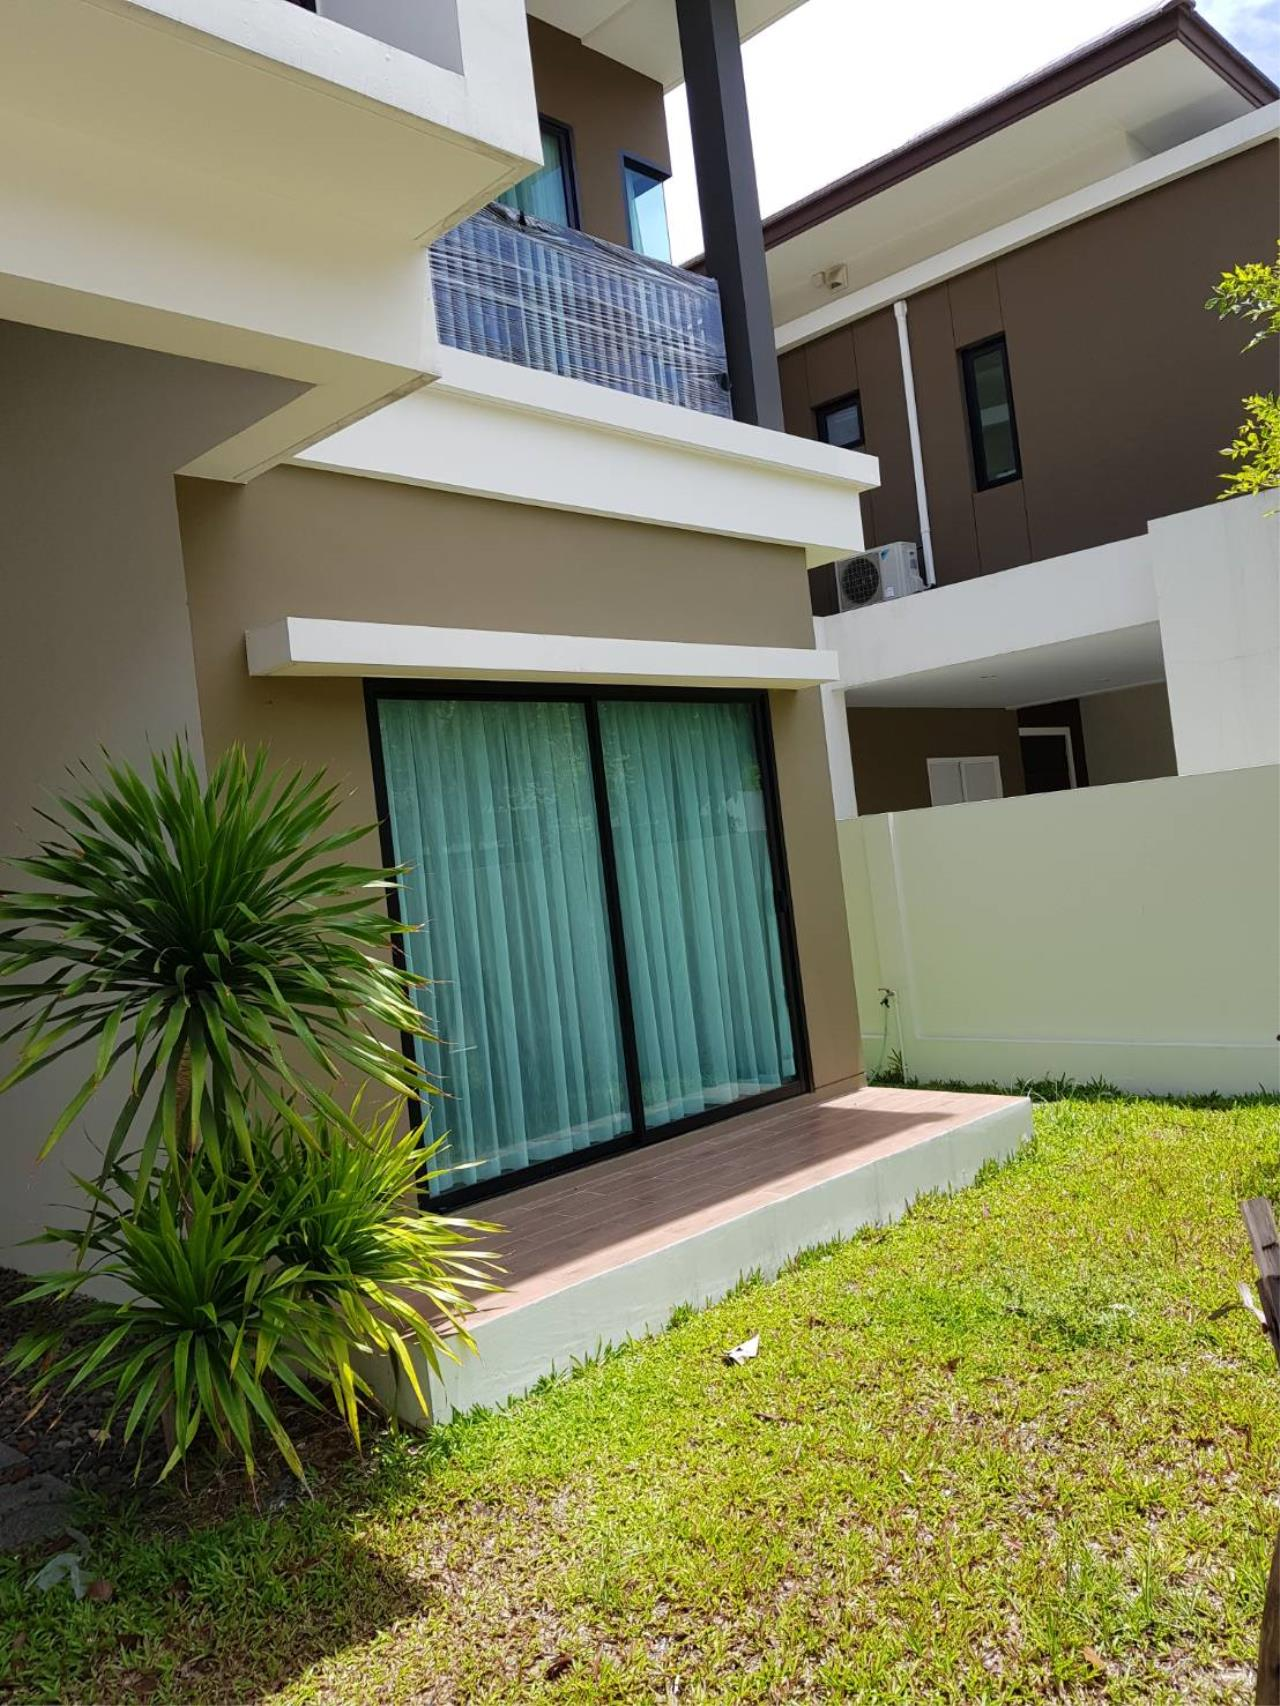 Right Move Thailand Agency's HR820 Villa Arcadia 2 house in compound for rent 70,000THB - for sale 11,900,000THB - 4 bedrooms - 230sqm. 14